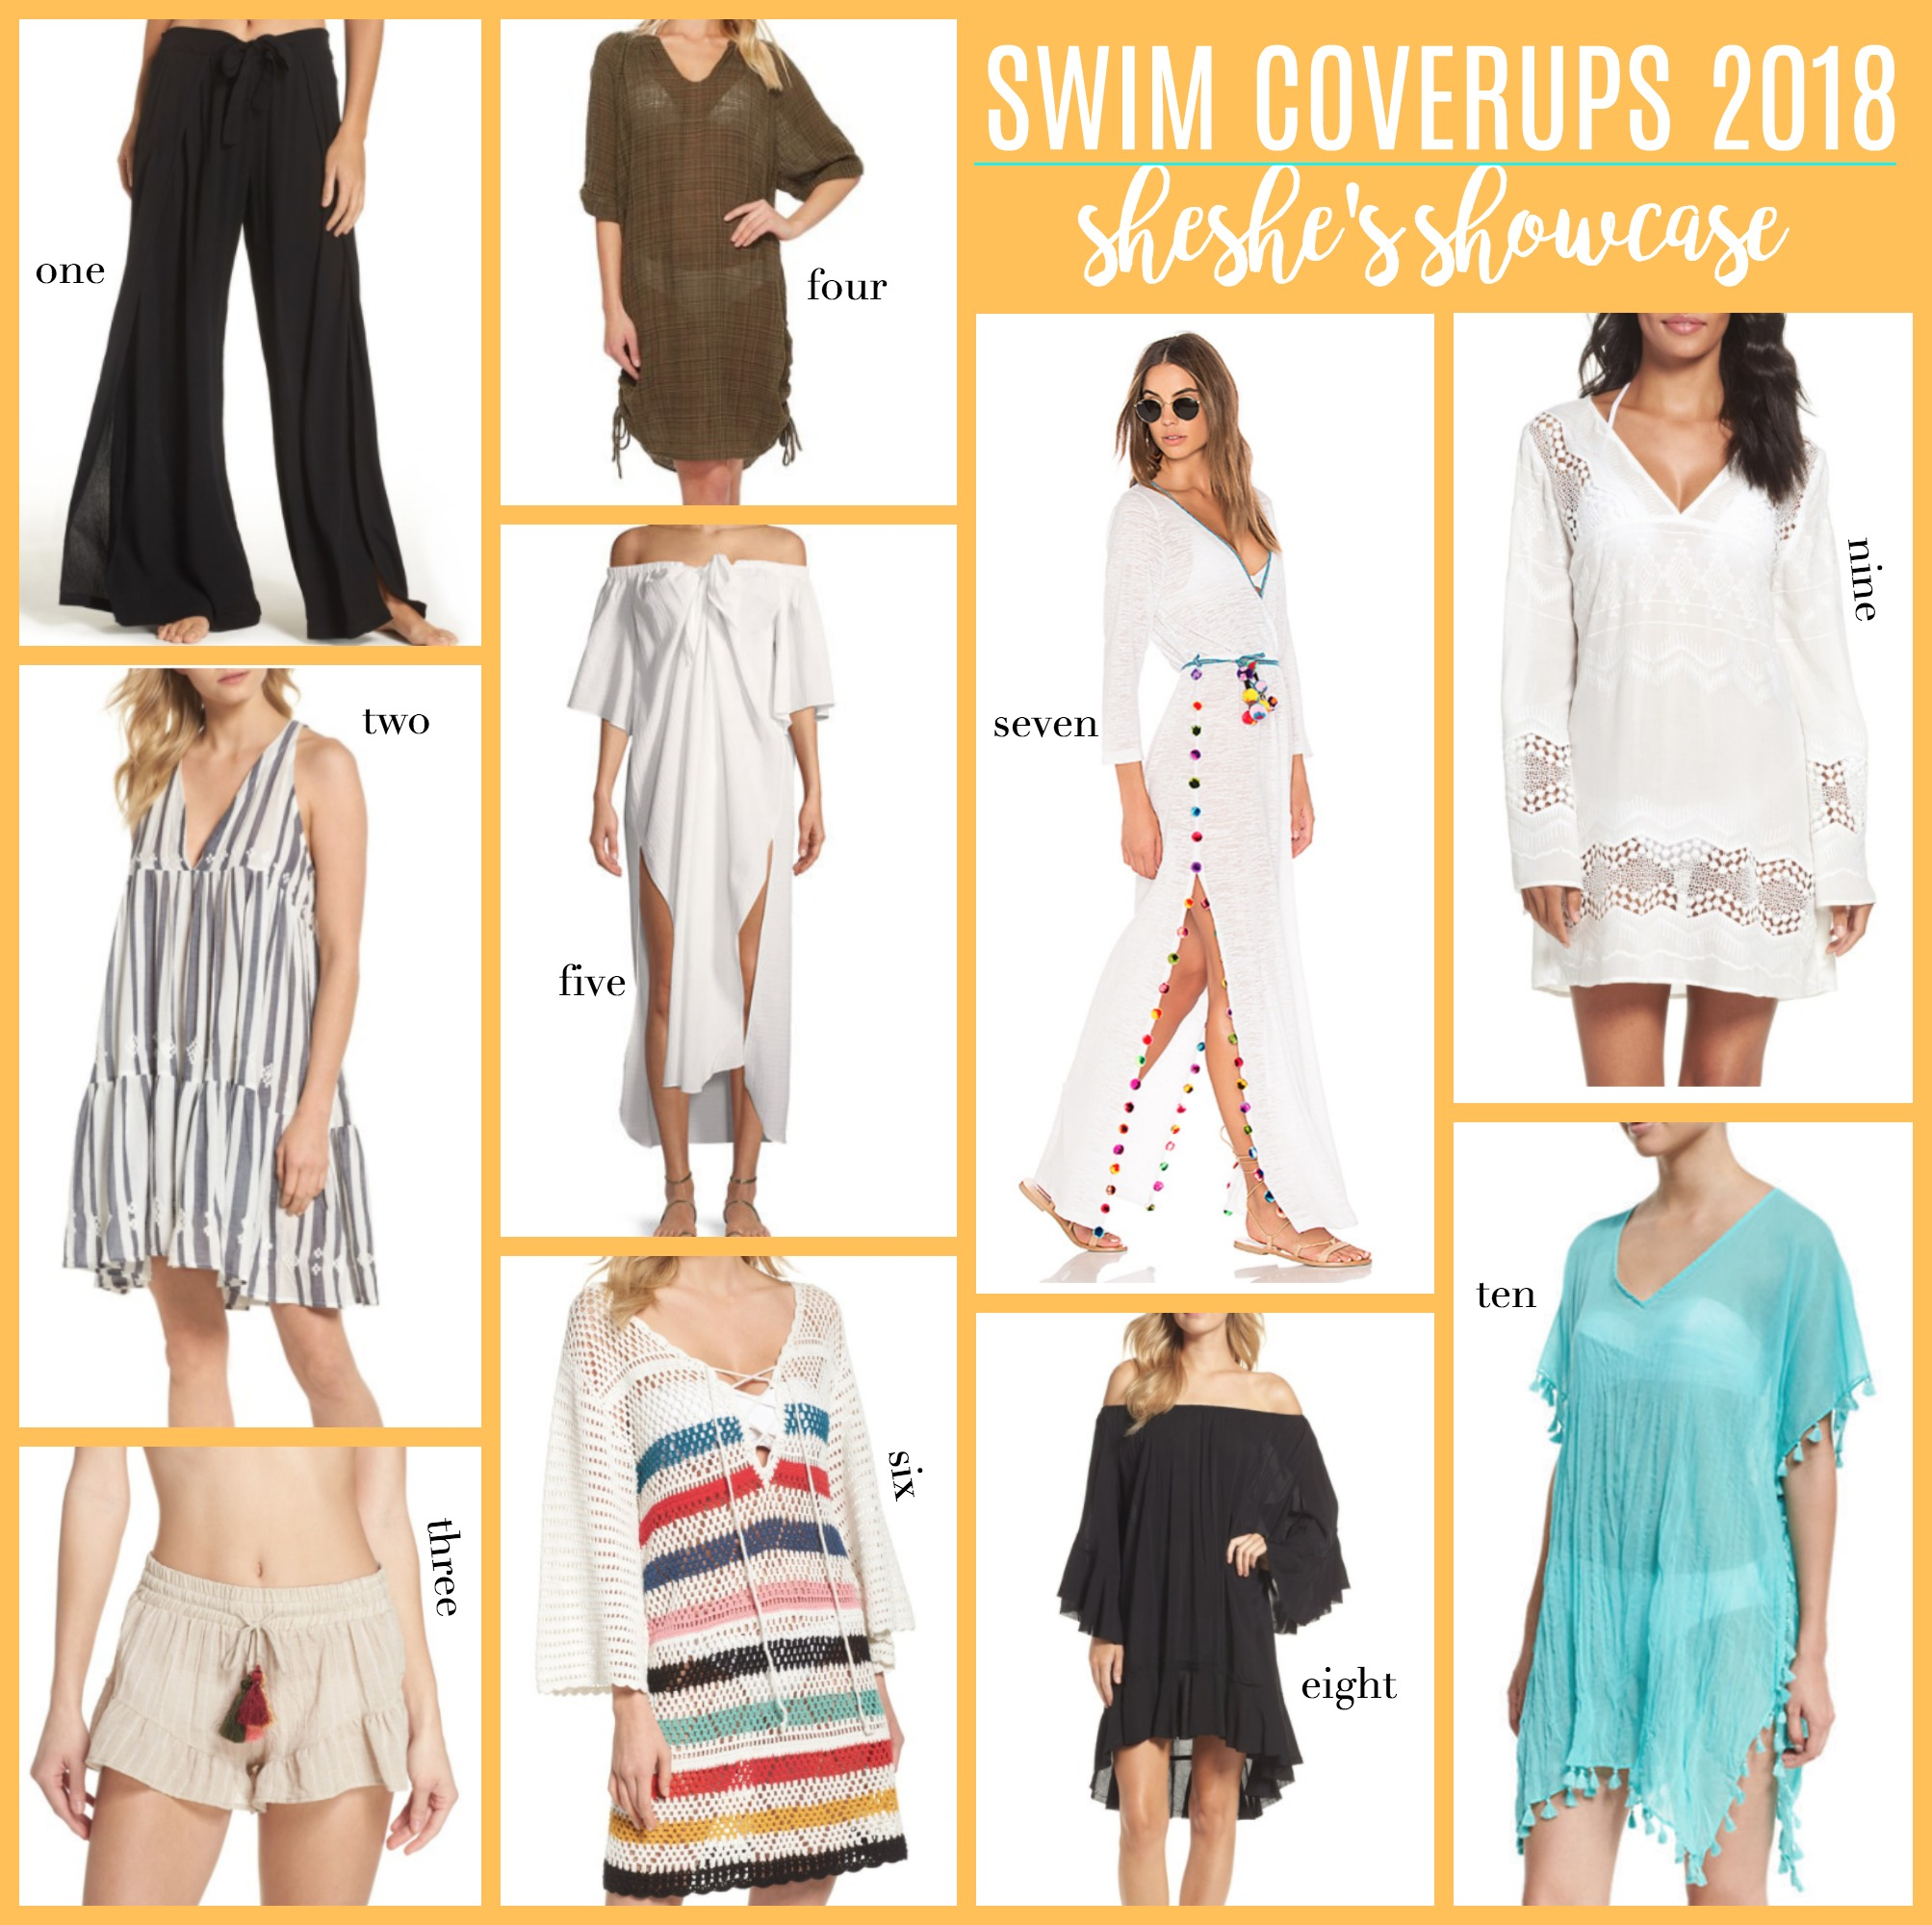 swimsuit coverups, swim wear, swimwear 2018, summer fashion, summer outfits, swim outfits